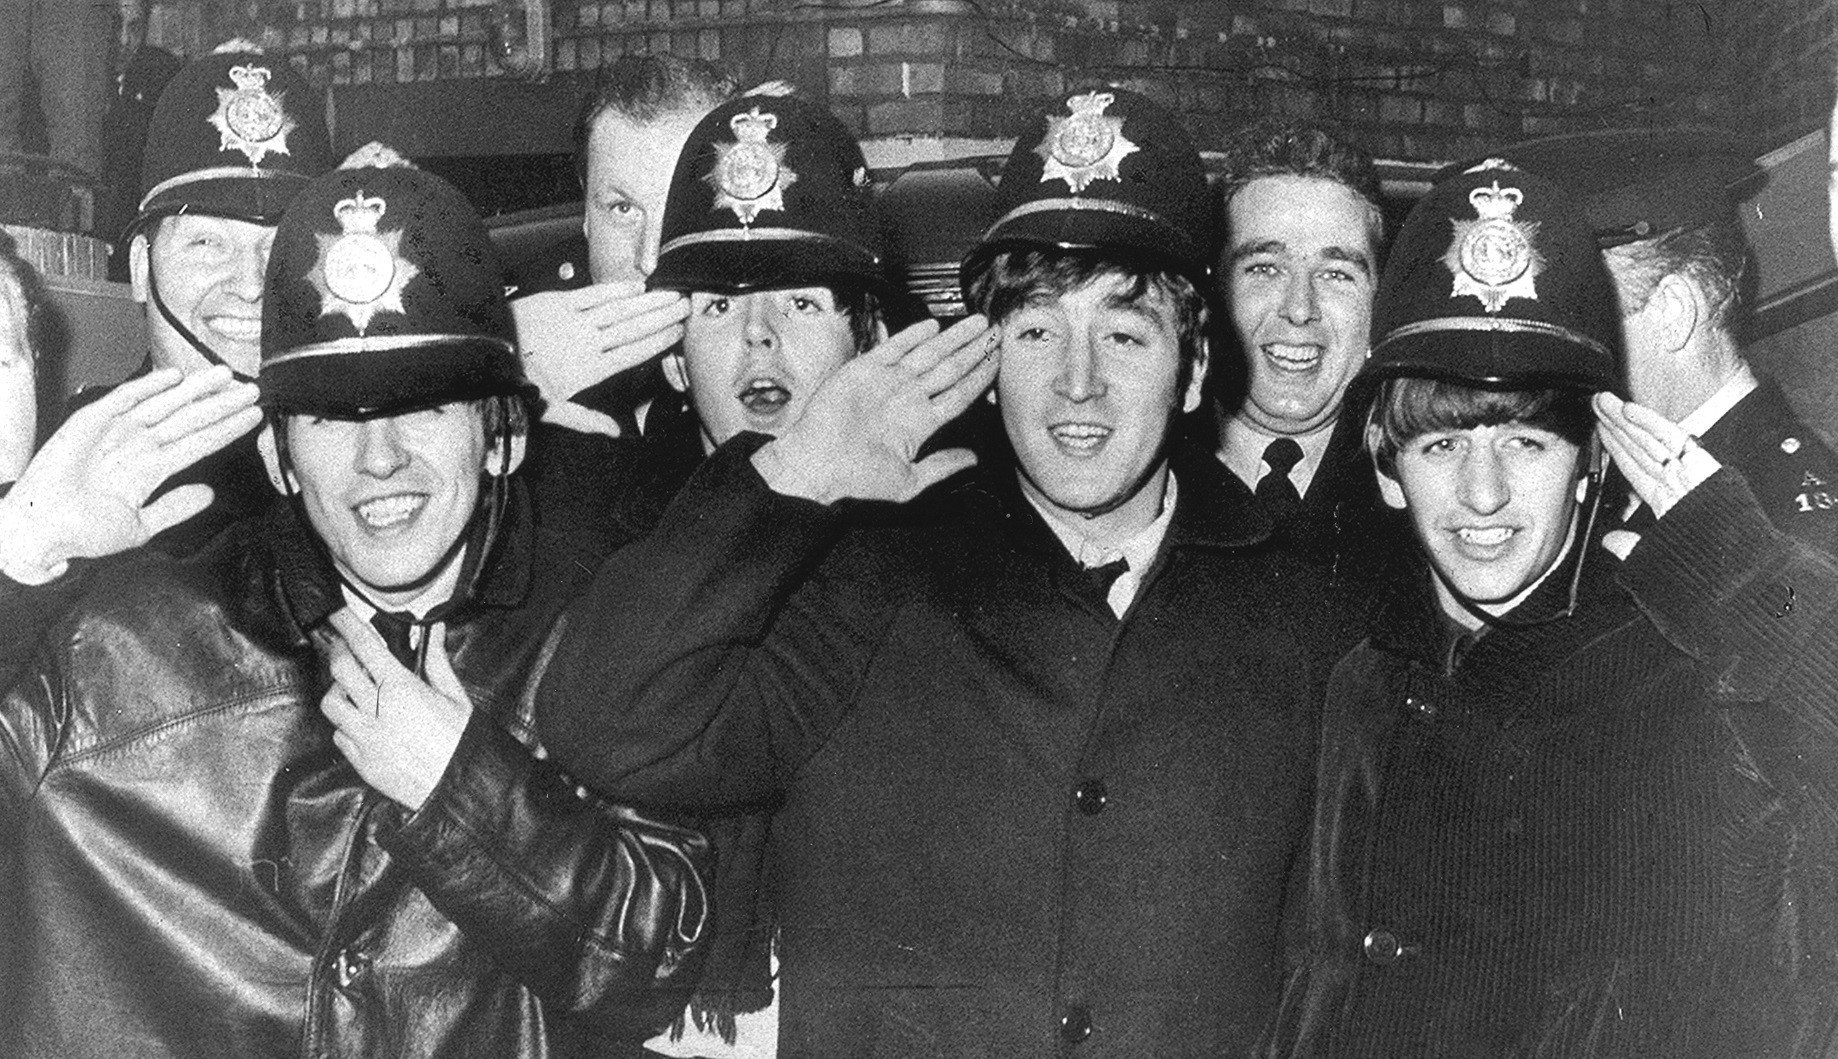 Photograph of The Beatles pop group dressed in British police uniform in 1963 at a concert in Birmingham UK